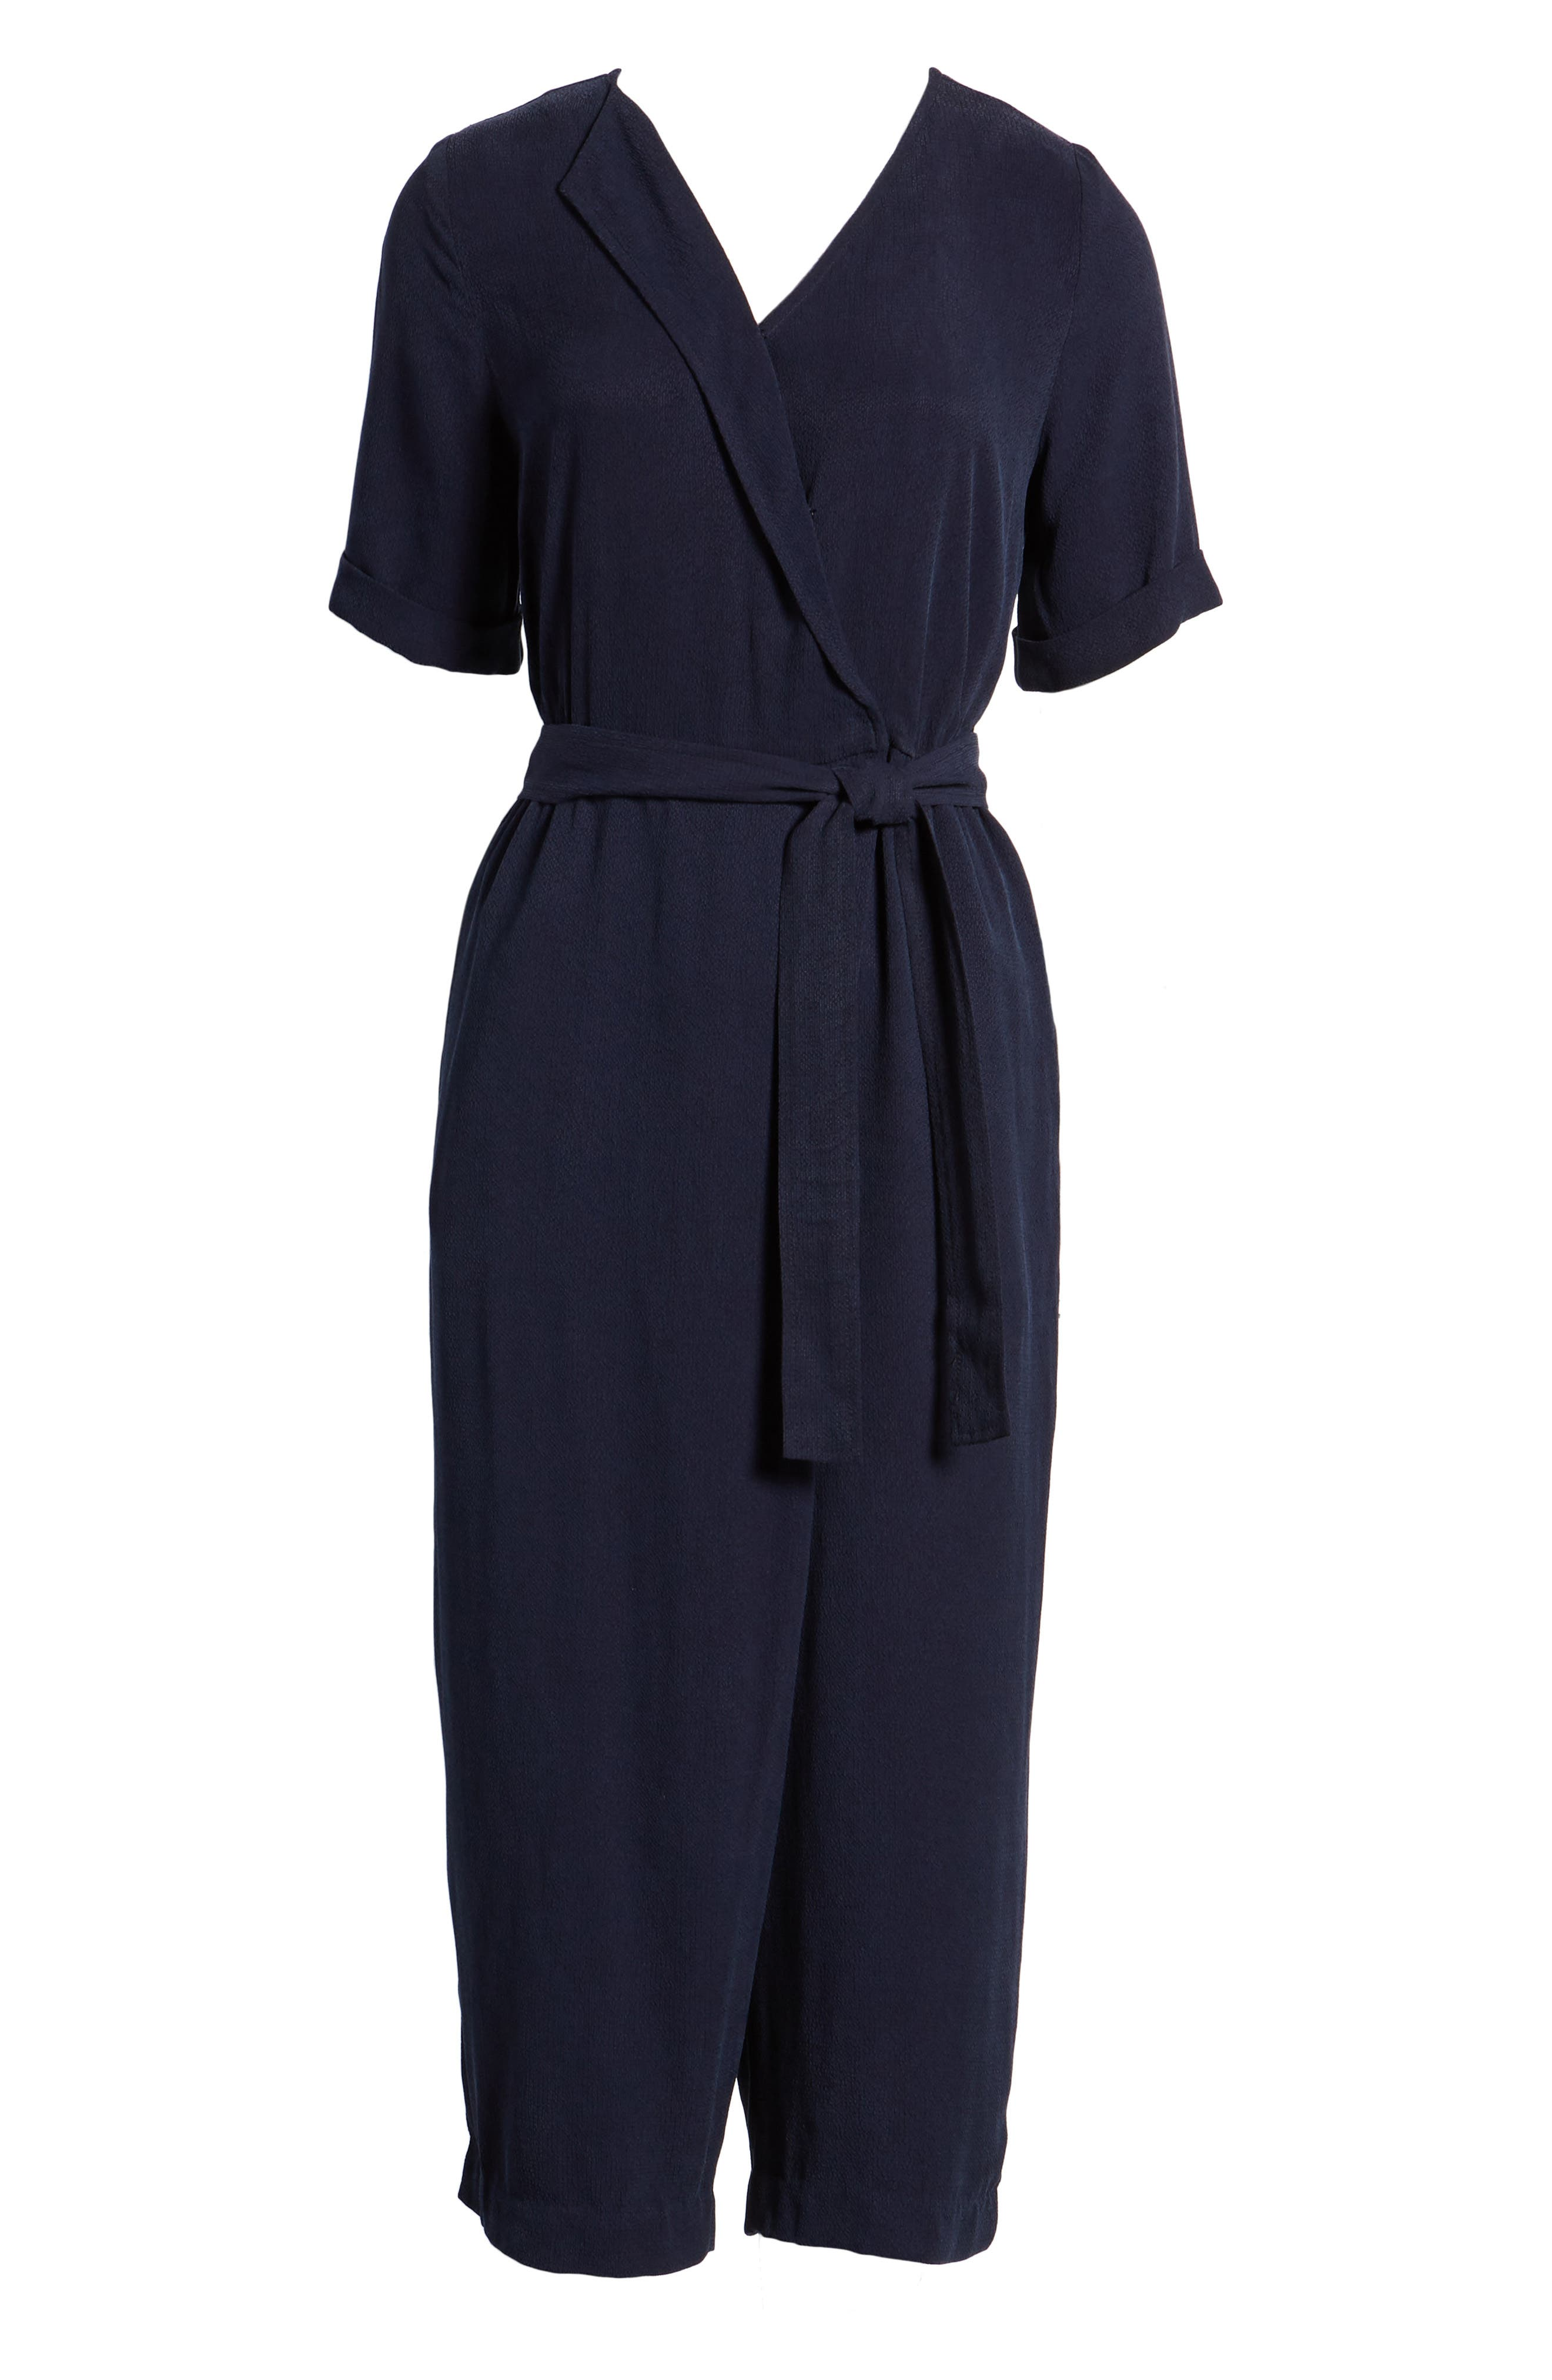 Downstairs Crop Jumpsuit,                             Alternate thumbnail 7, color,                             Navy